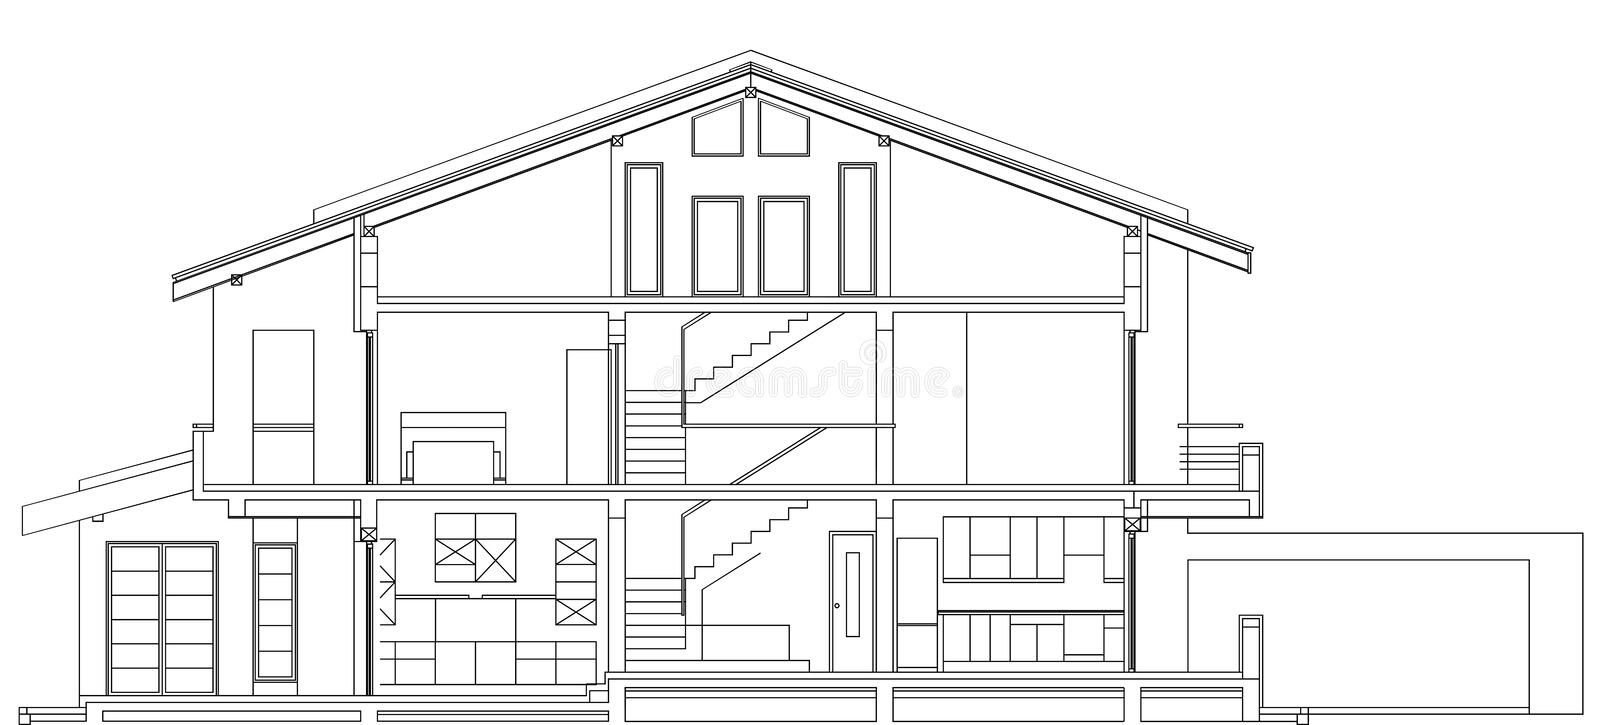 Modern American House Facade Section royalty free illustration